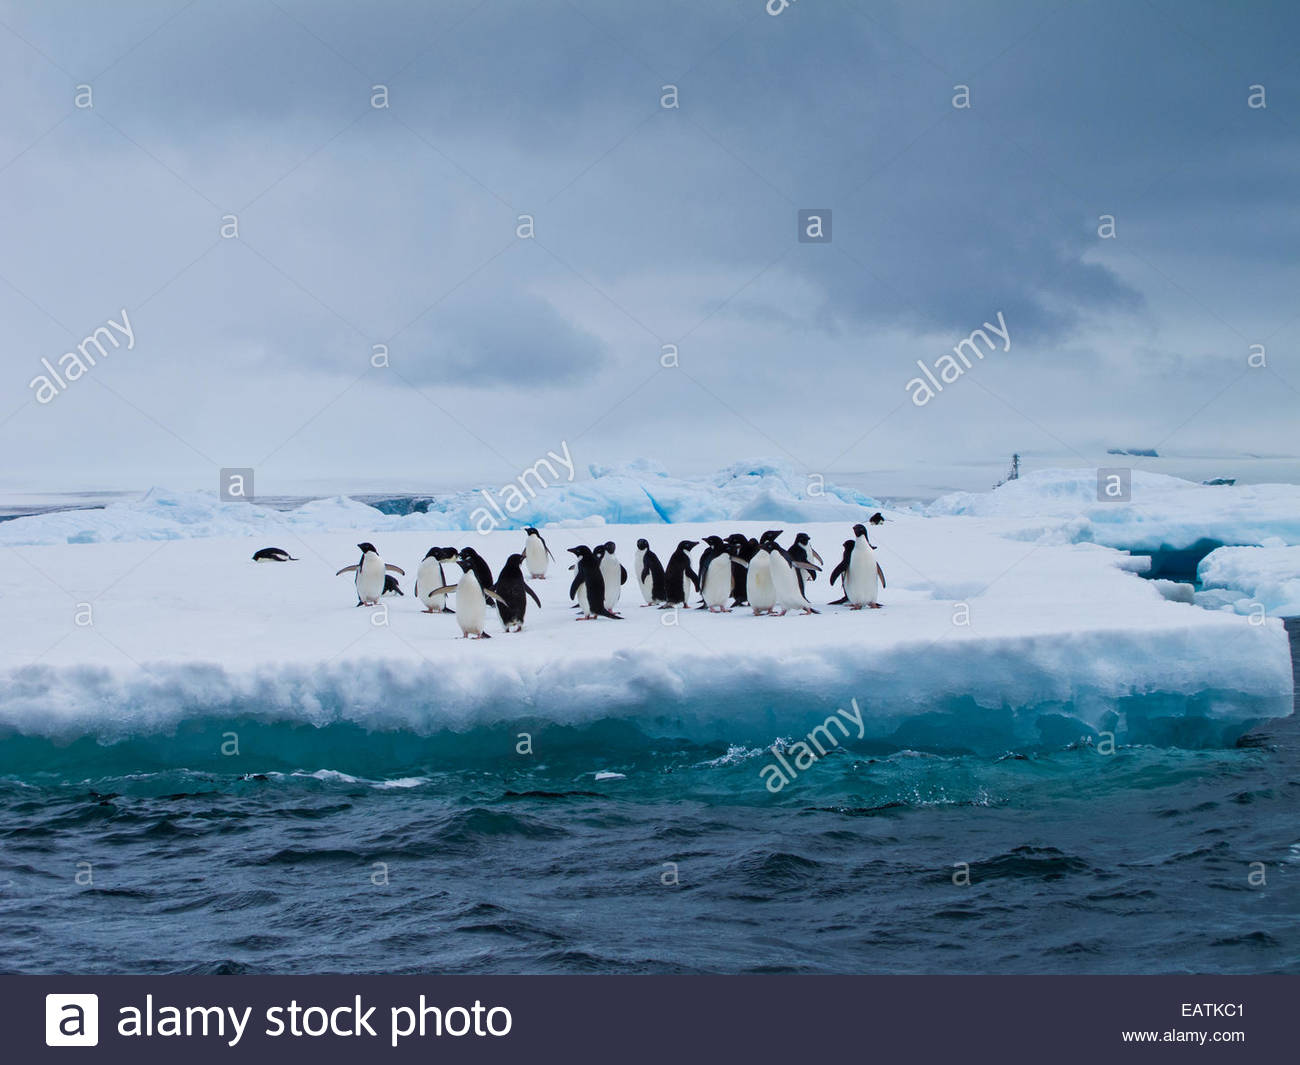 A colony of Adelie penguins meet on an iceberg. - Stock Image